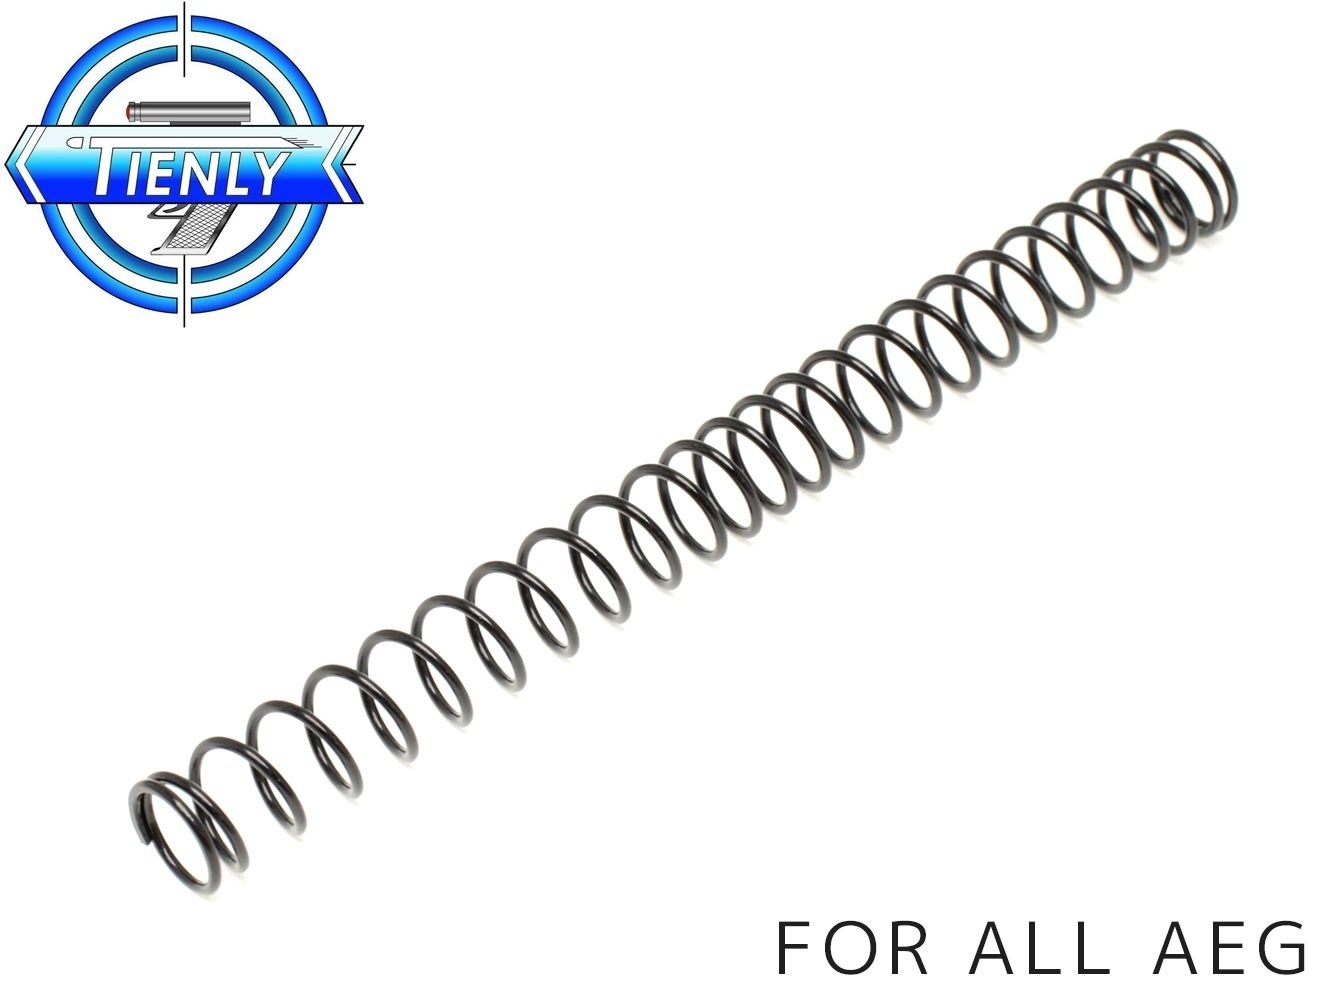 Tienly Non-linear spring m150